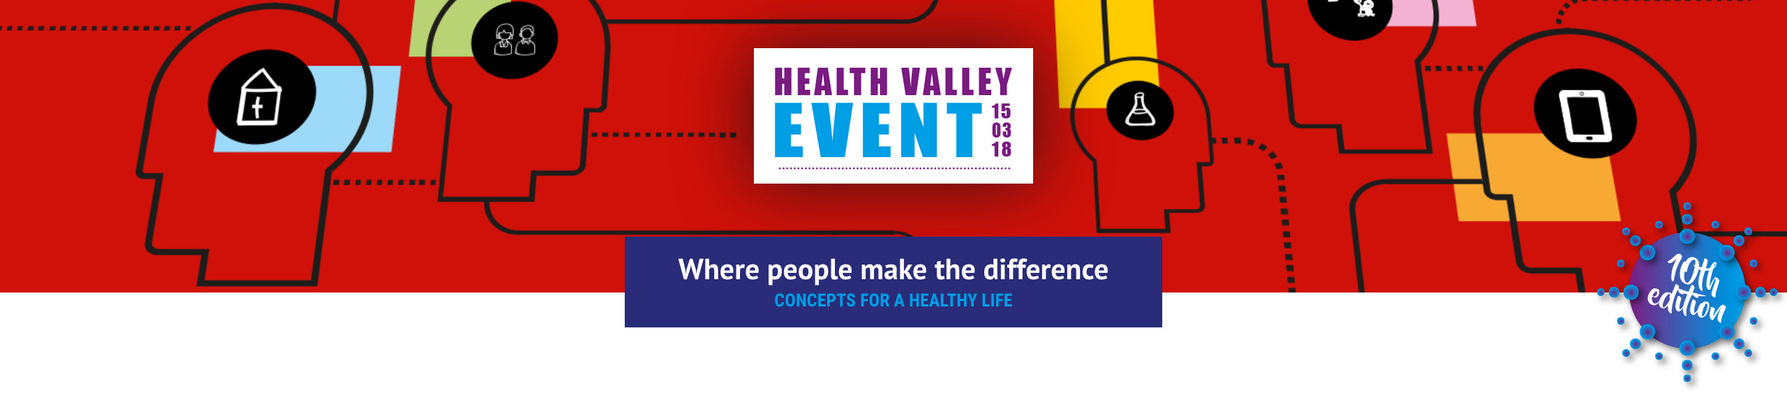 Health Valley Event 2018 - sponsors